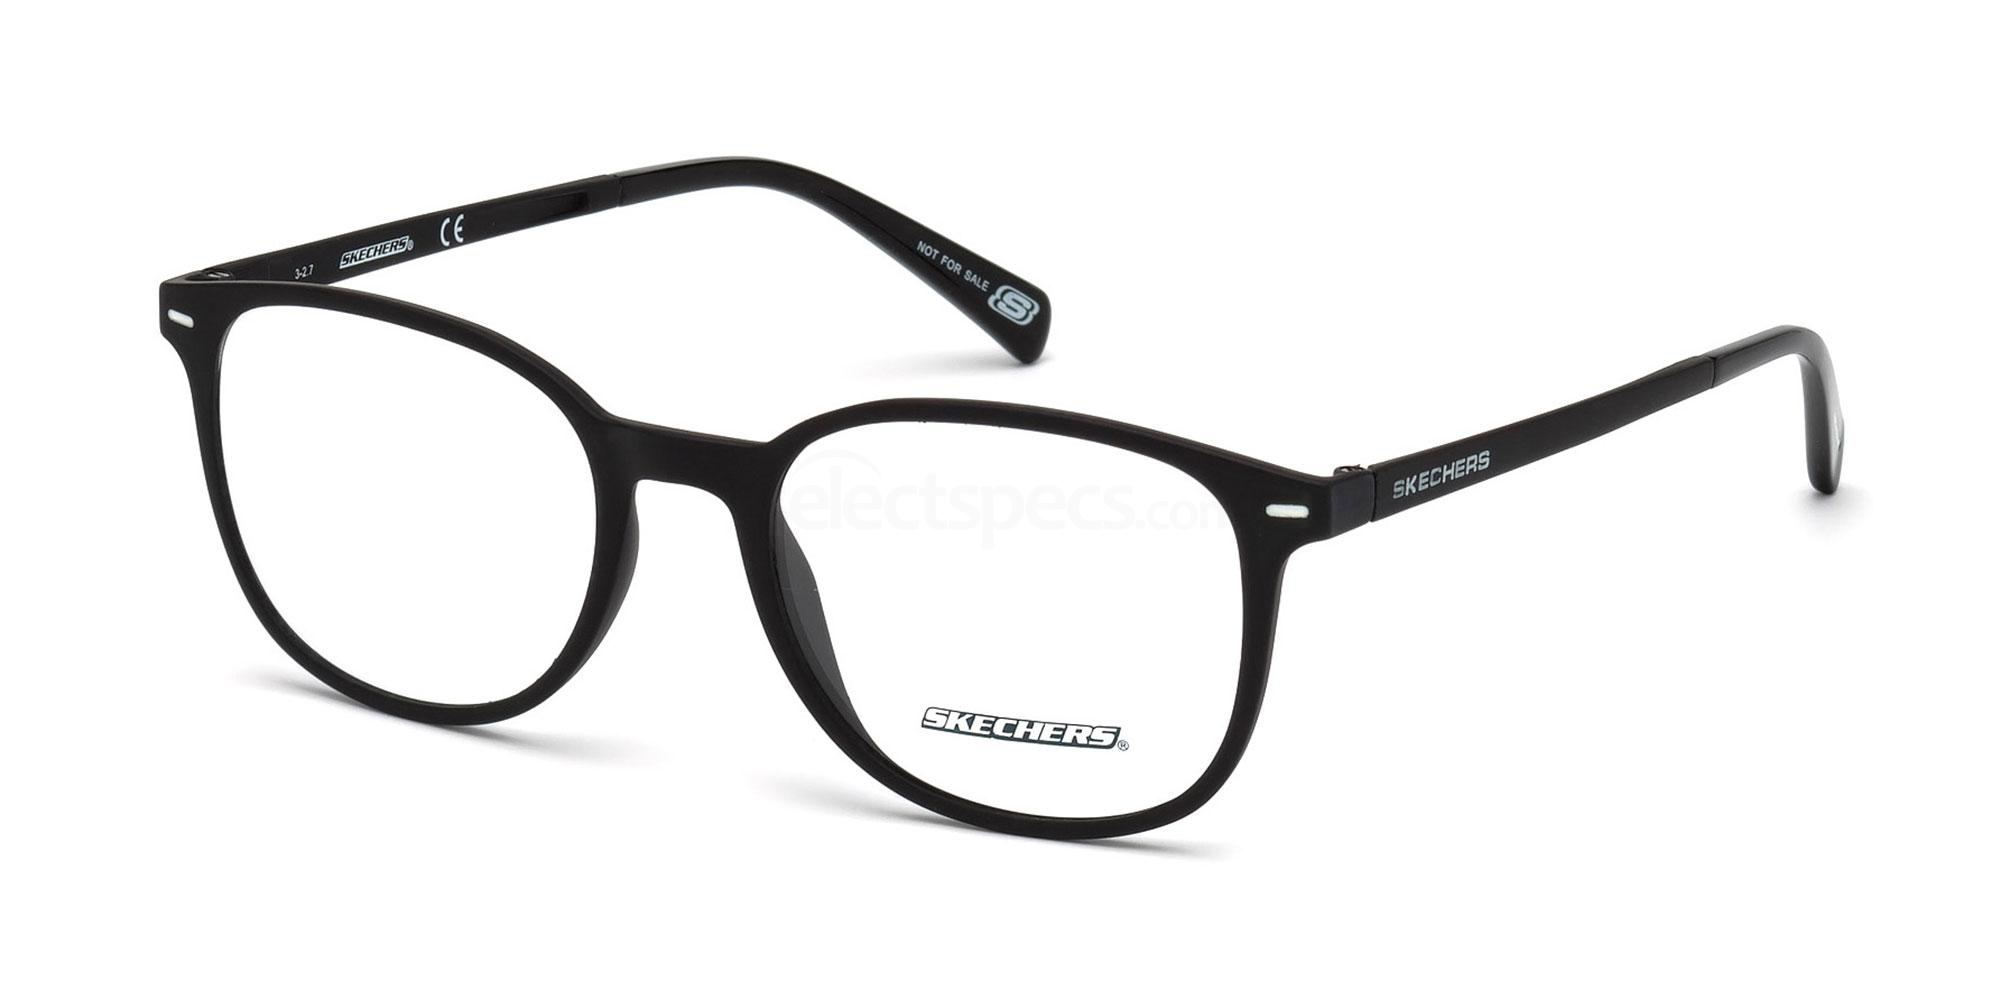 002 SE3217 Glasses, Skechers